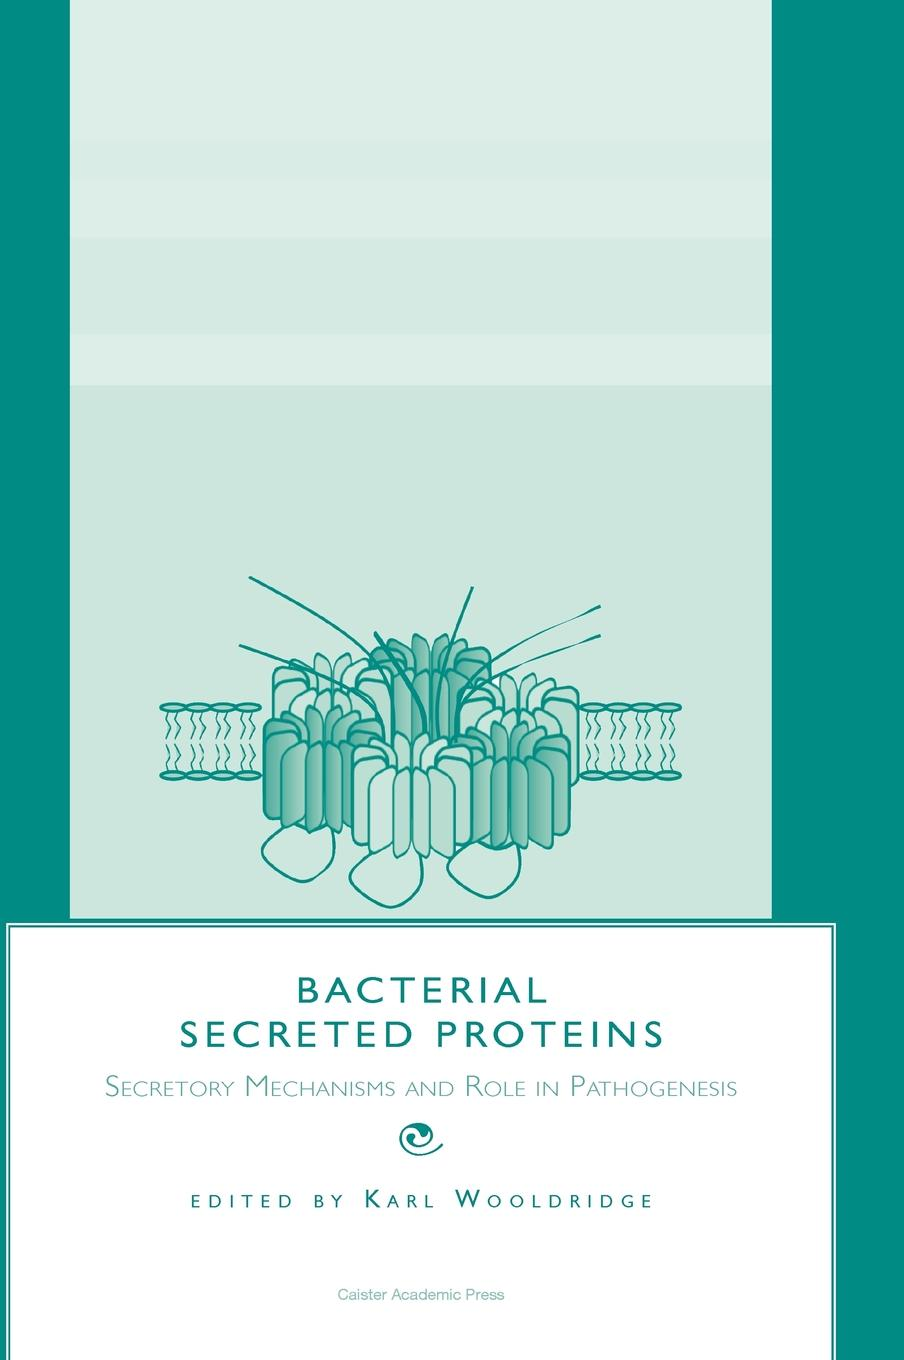 Bacterial Secreted Proteins: Secretory Mechanisms and Role in Pathogenesis